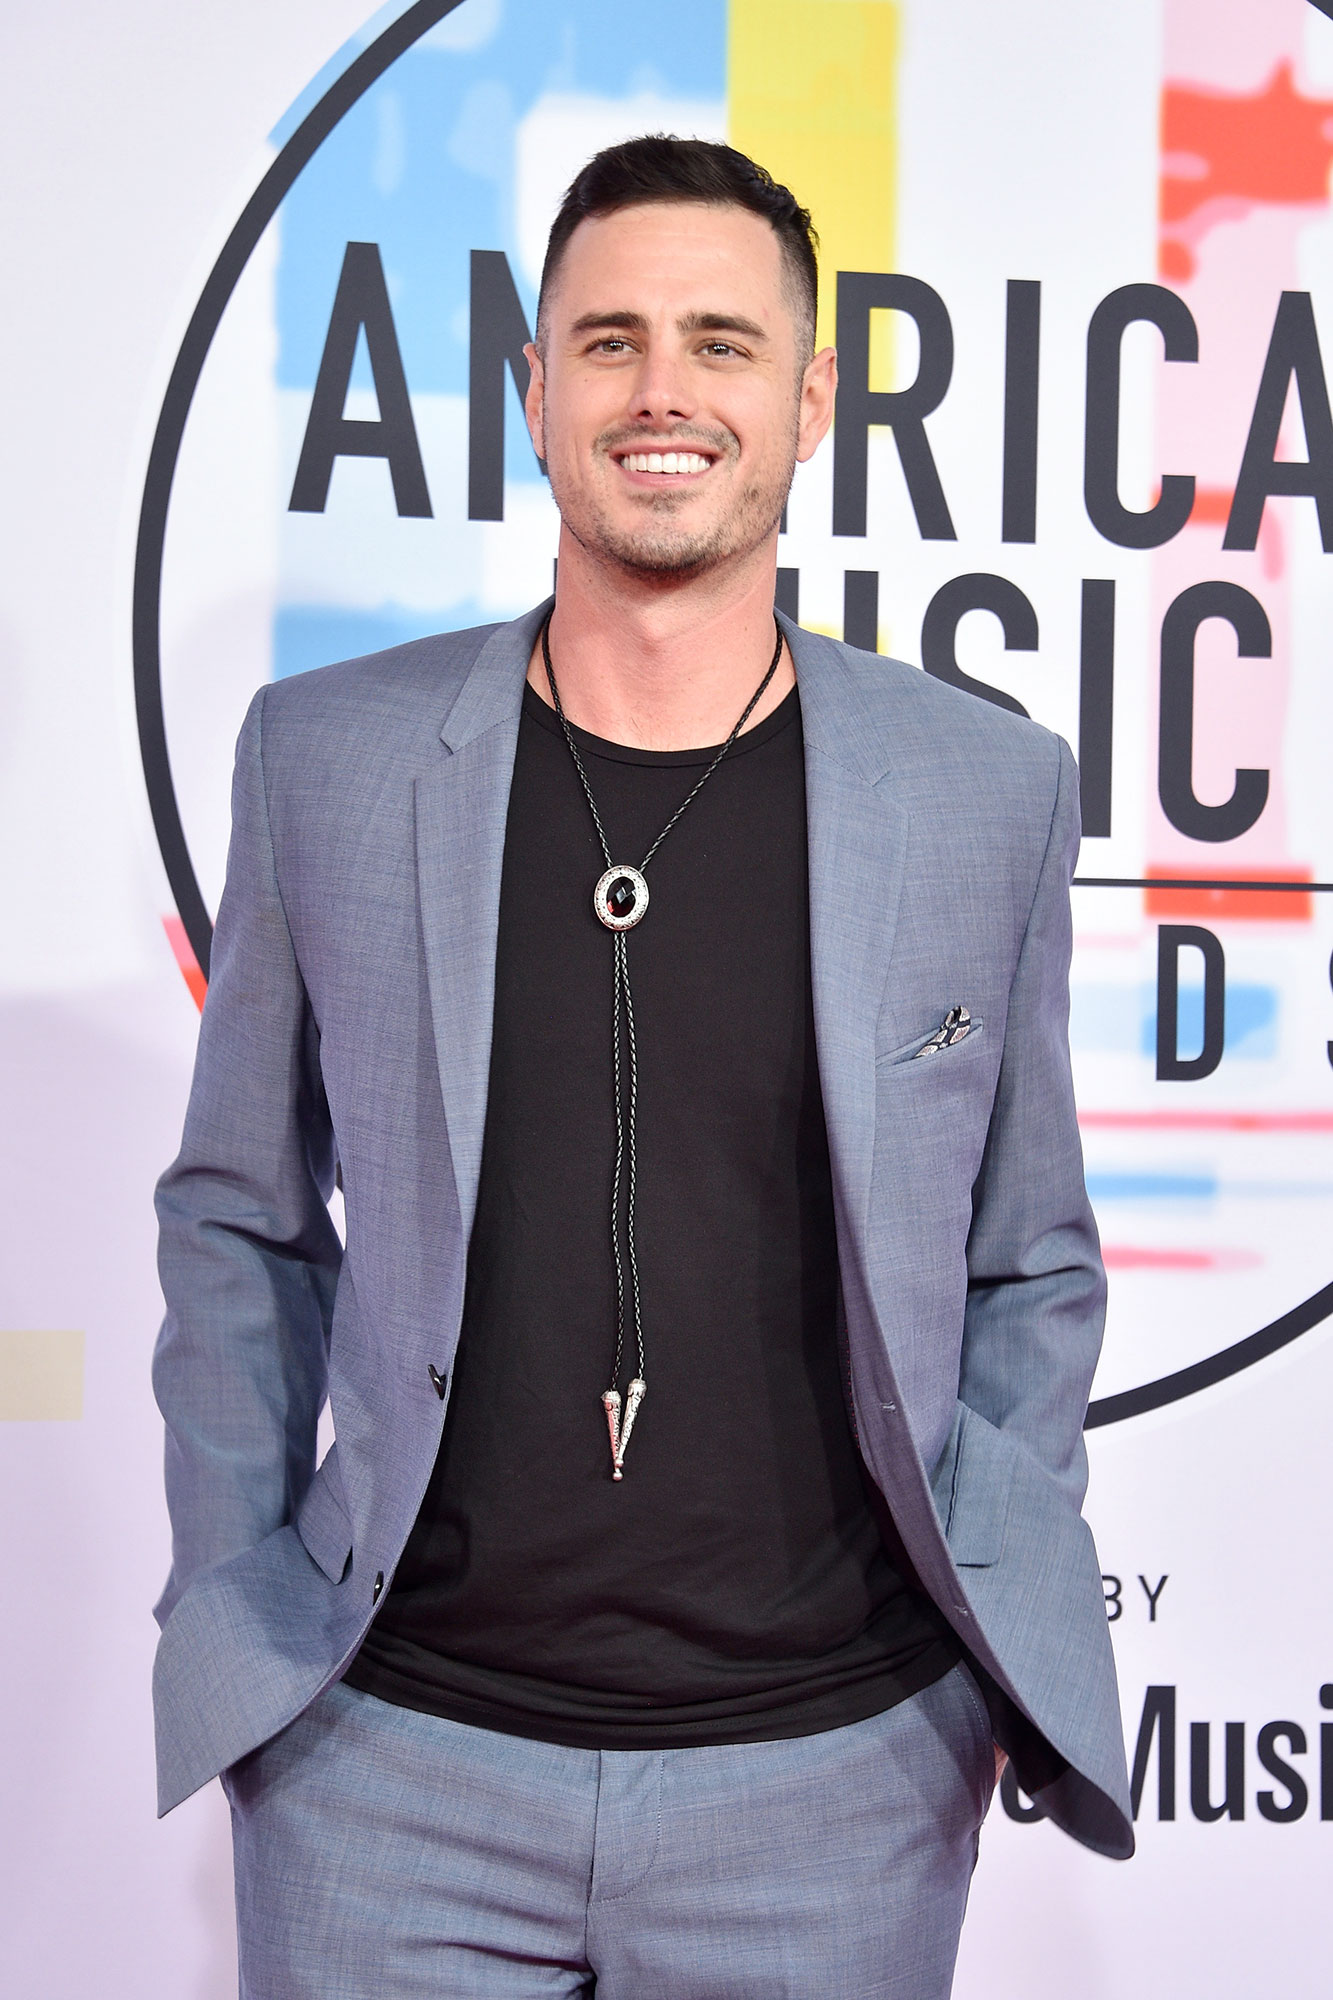 Ben Higgins: Hannah Brown Is Not 'Prepped' to Be The Bachelorette - Ben Higgins attends the 2018 American Music Awards at Microsoft Theater on October 9, 2018 in Los Angeles, California.